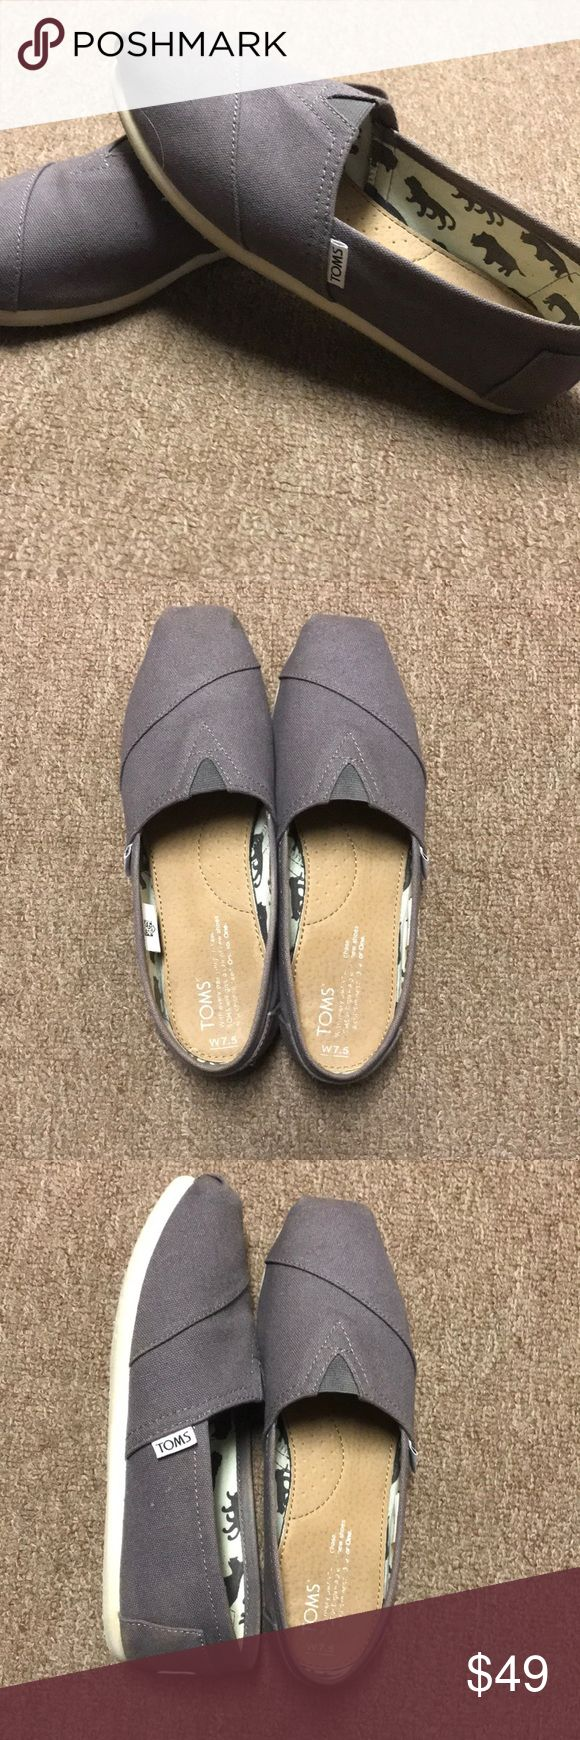 Gray Toms Worn maybe one time, GREAT condition, wasn't my right size Toms Shoes Flats & Loafers